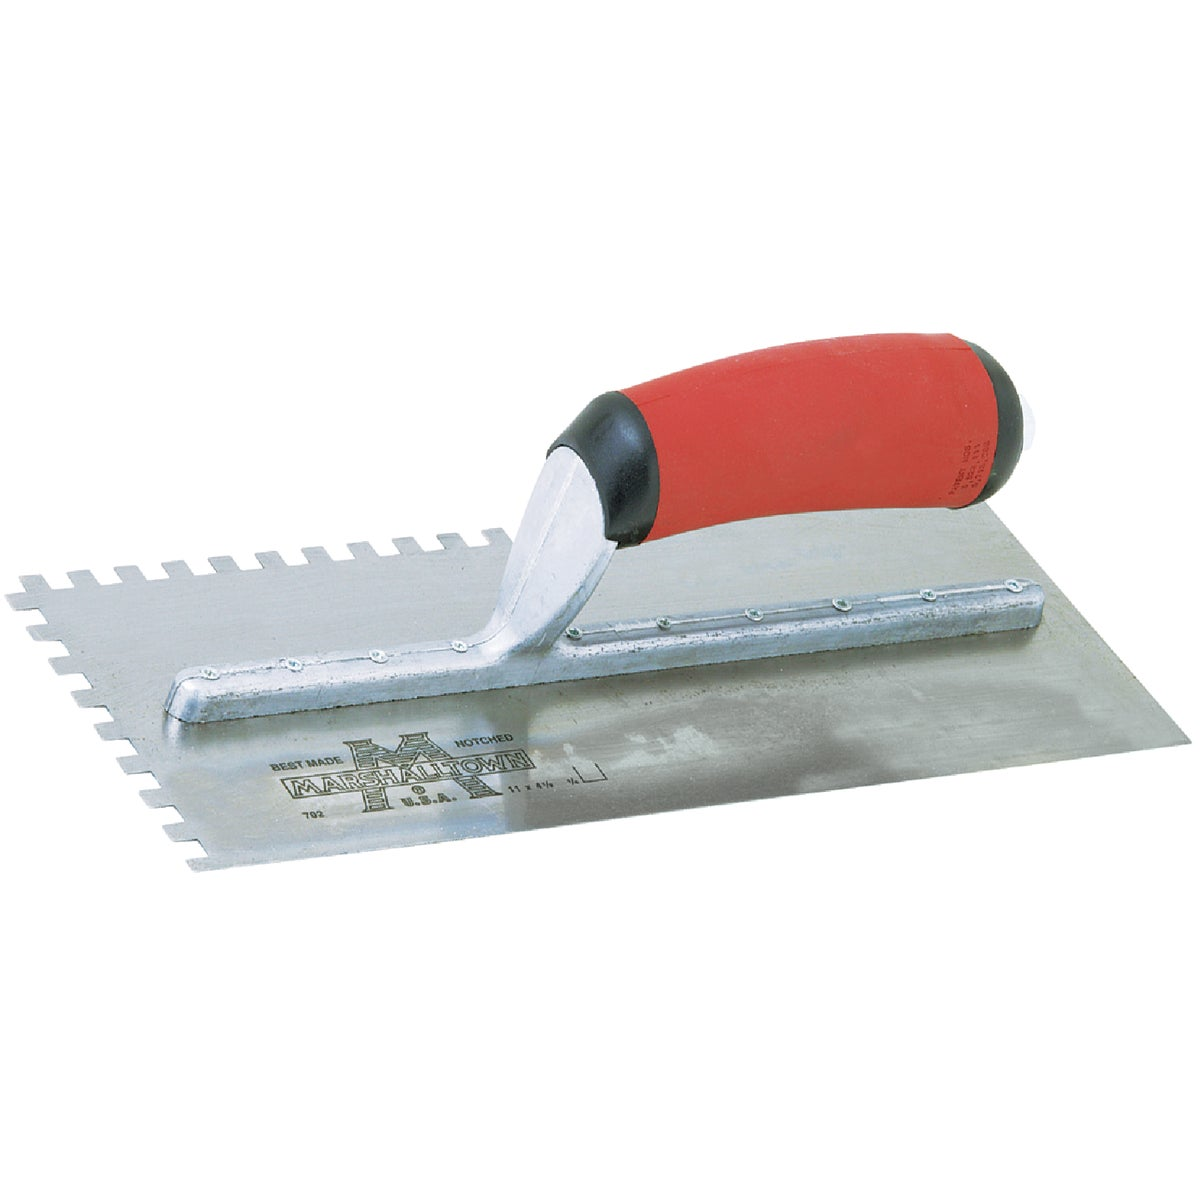 702SD NOTCHED TROWEL - 15709 by Marshalltown Trowel